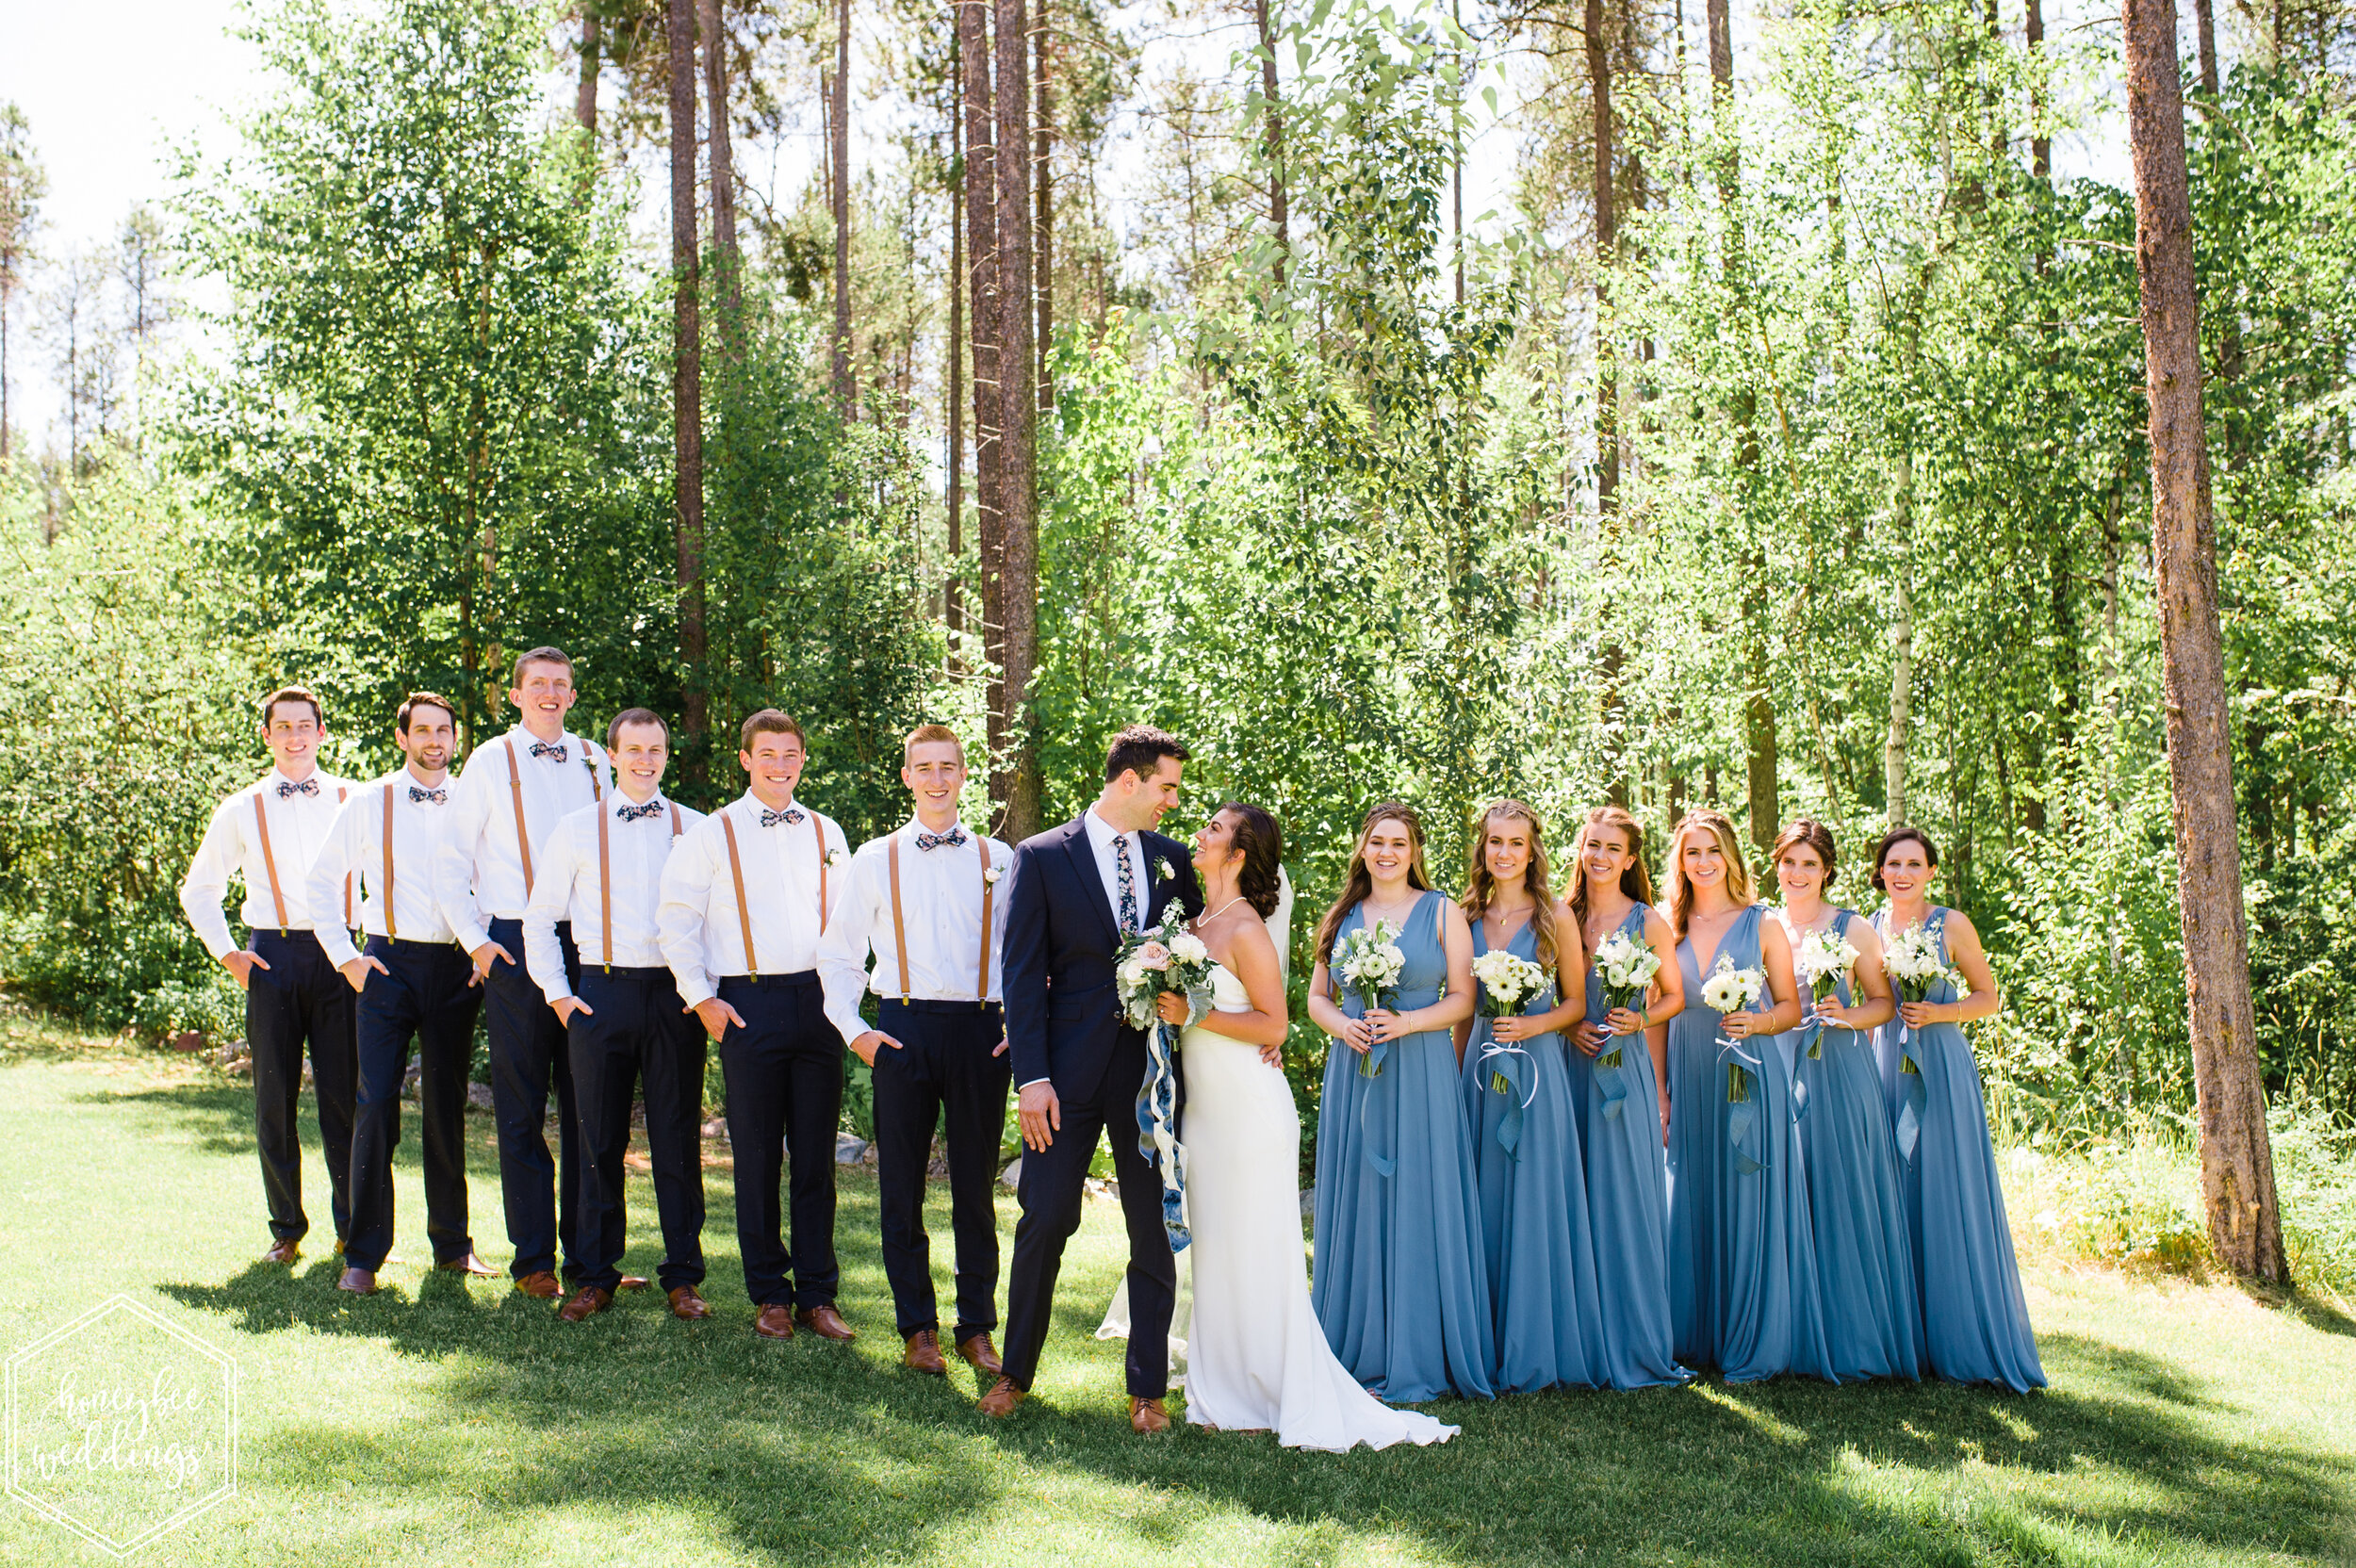 044Glacier National Park Wedding_Glacier Outdoor Center_Honeybee Weddings_Anna & Seth_July 21, 2019-1852.jpg